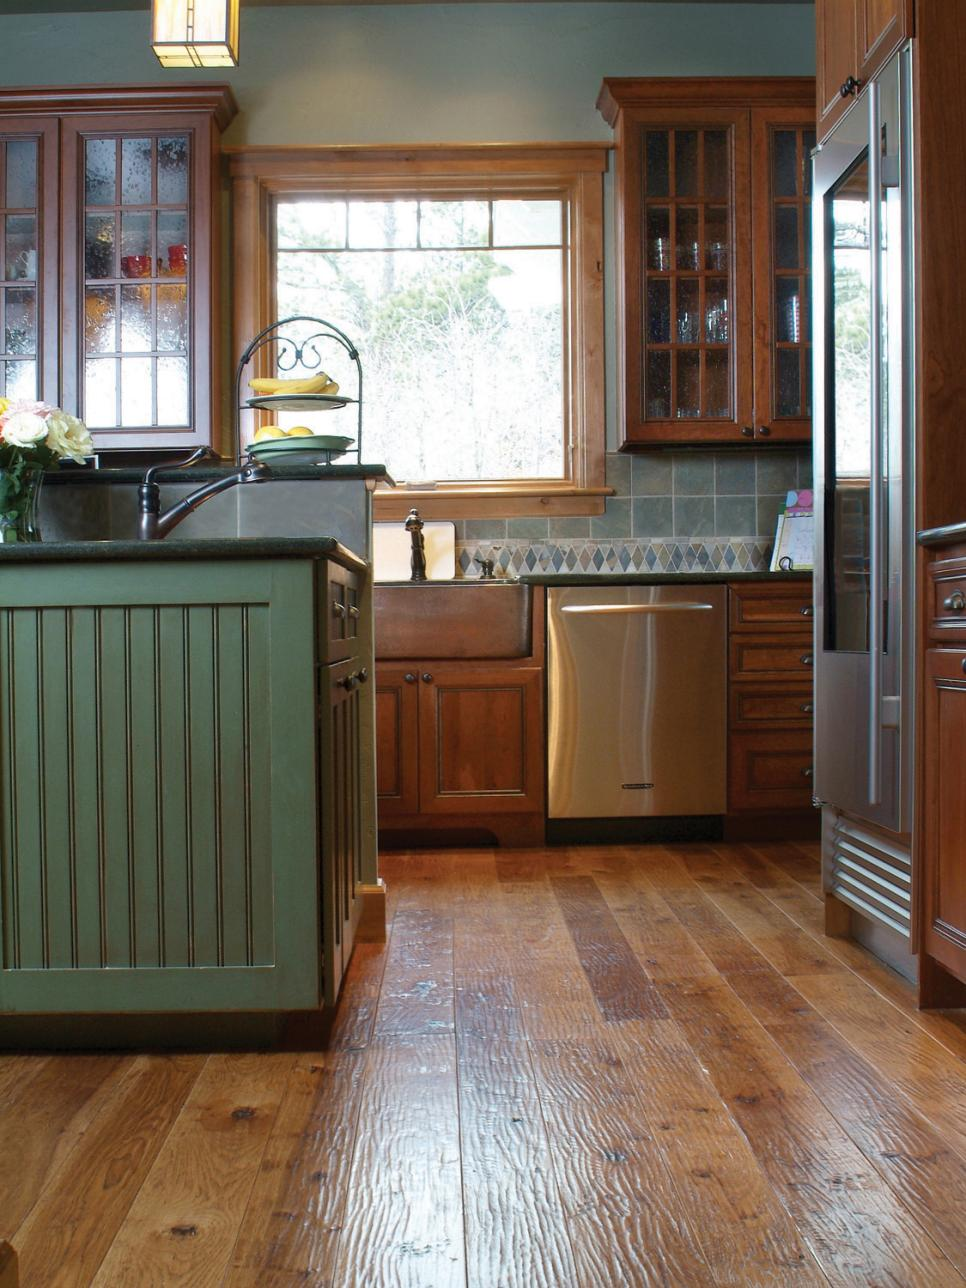 Best Floors For A Kitchen 8 Flooring Trends To Try Hgtv